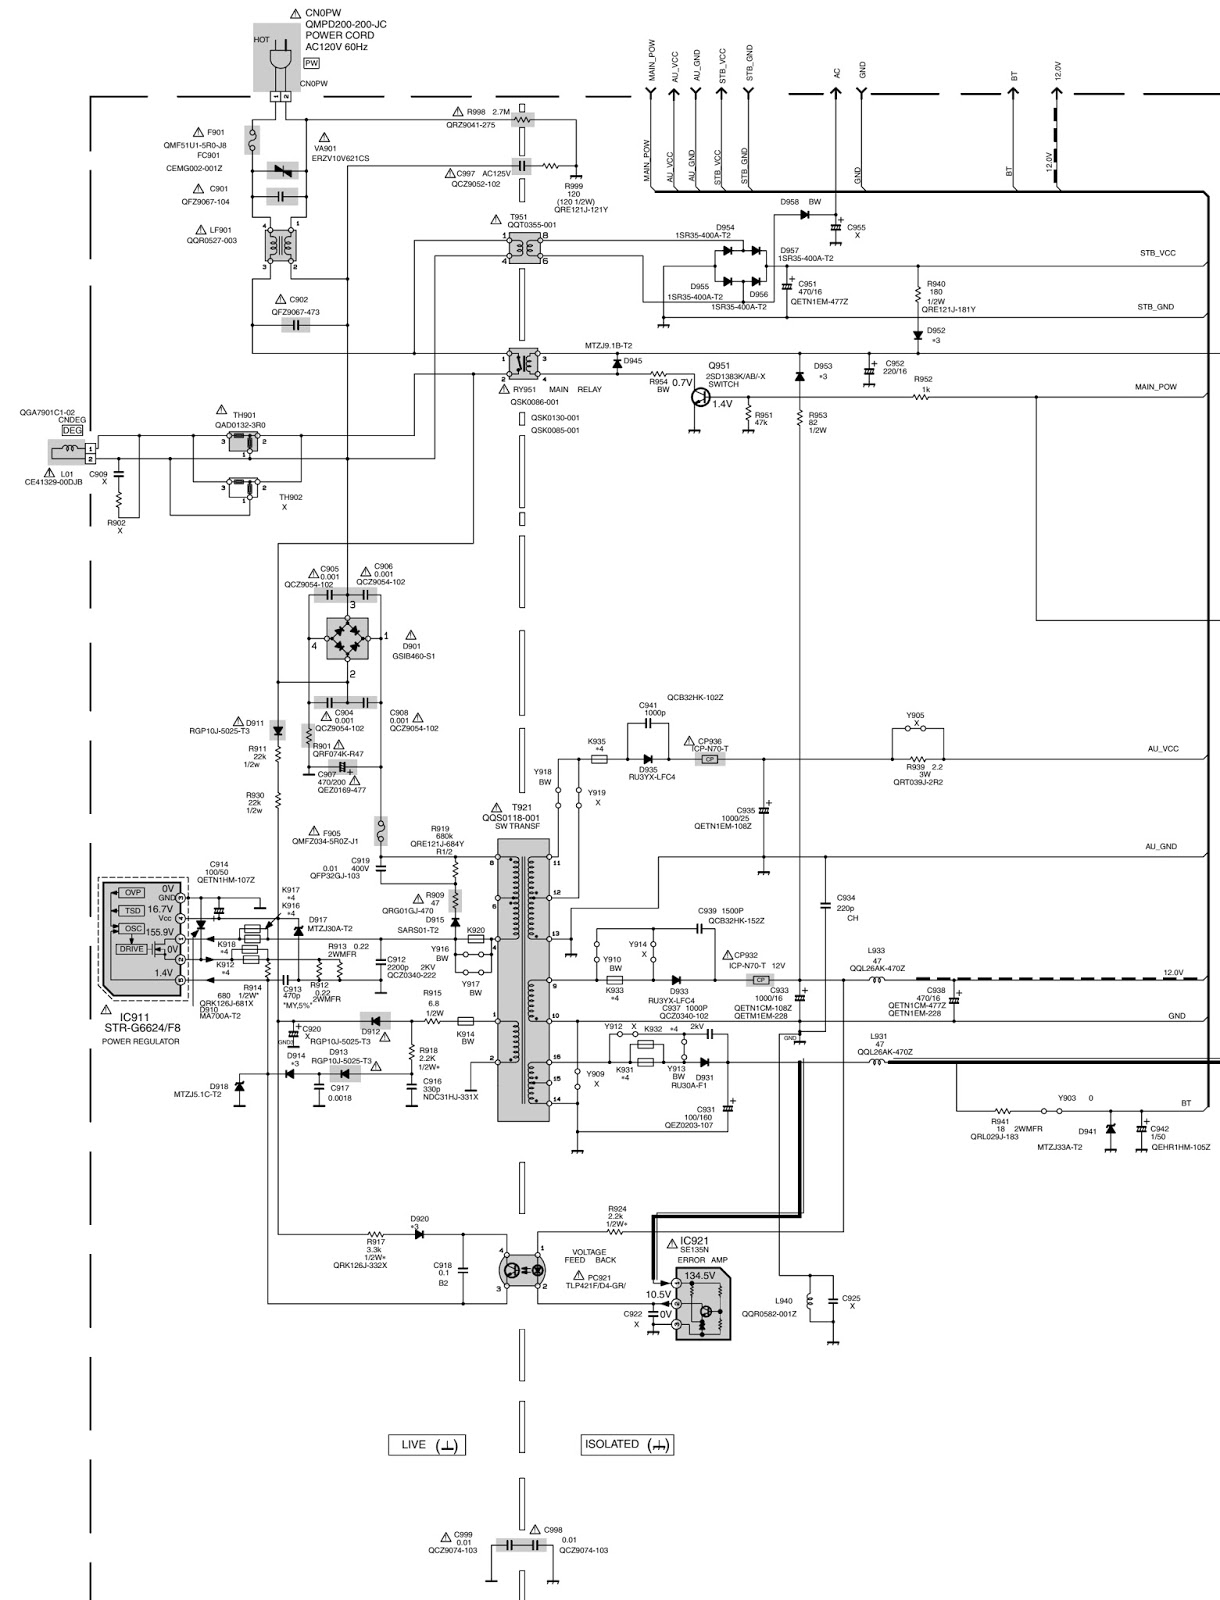 Surprising Wiring Diagram For Jvc Car Stereo Together With Tv Circuit Board Wiring 101 Mecadwellnesstrialsorg